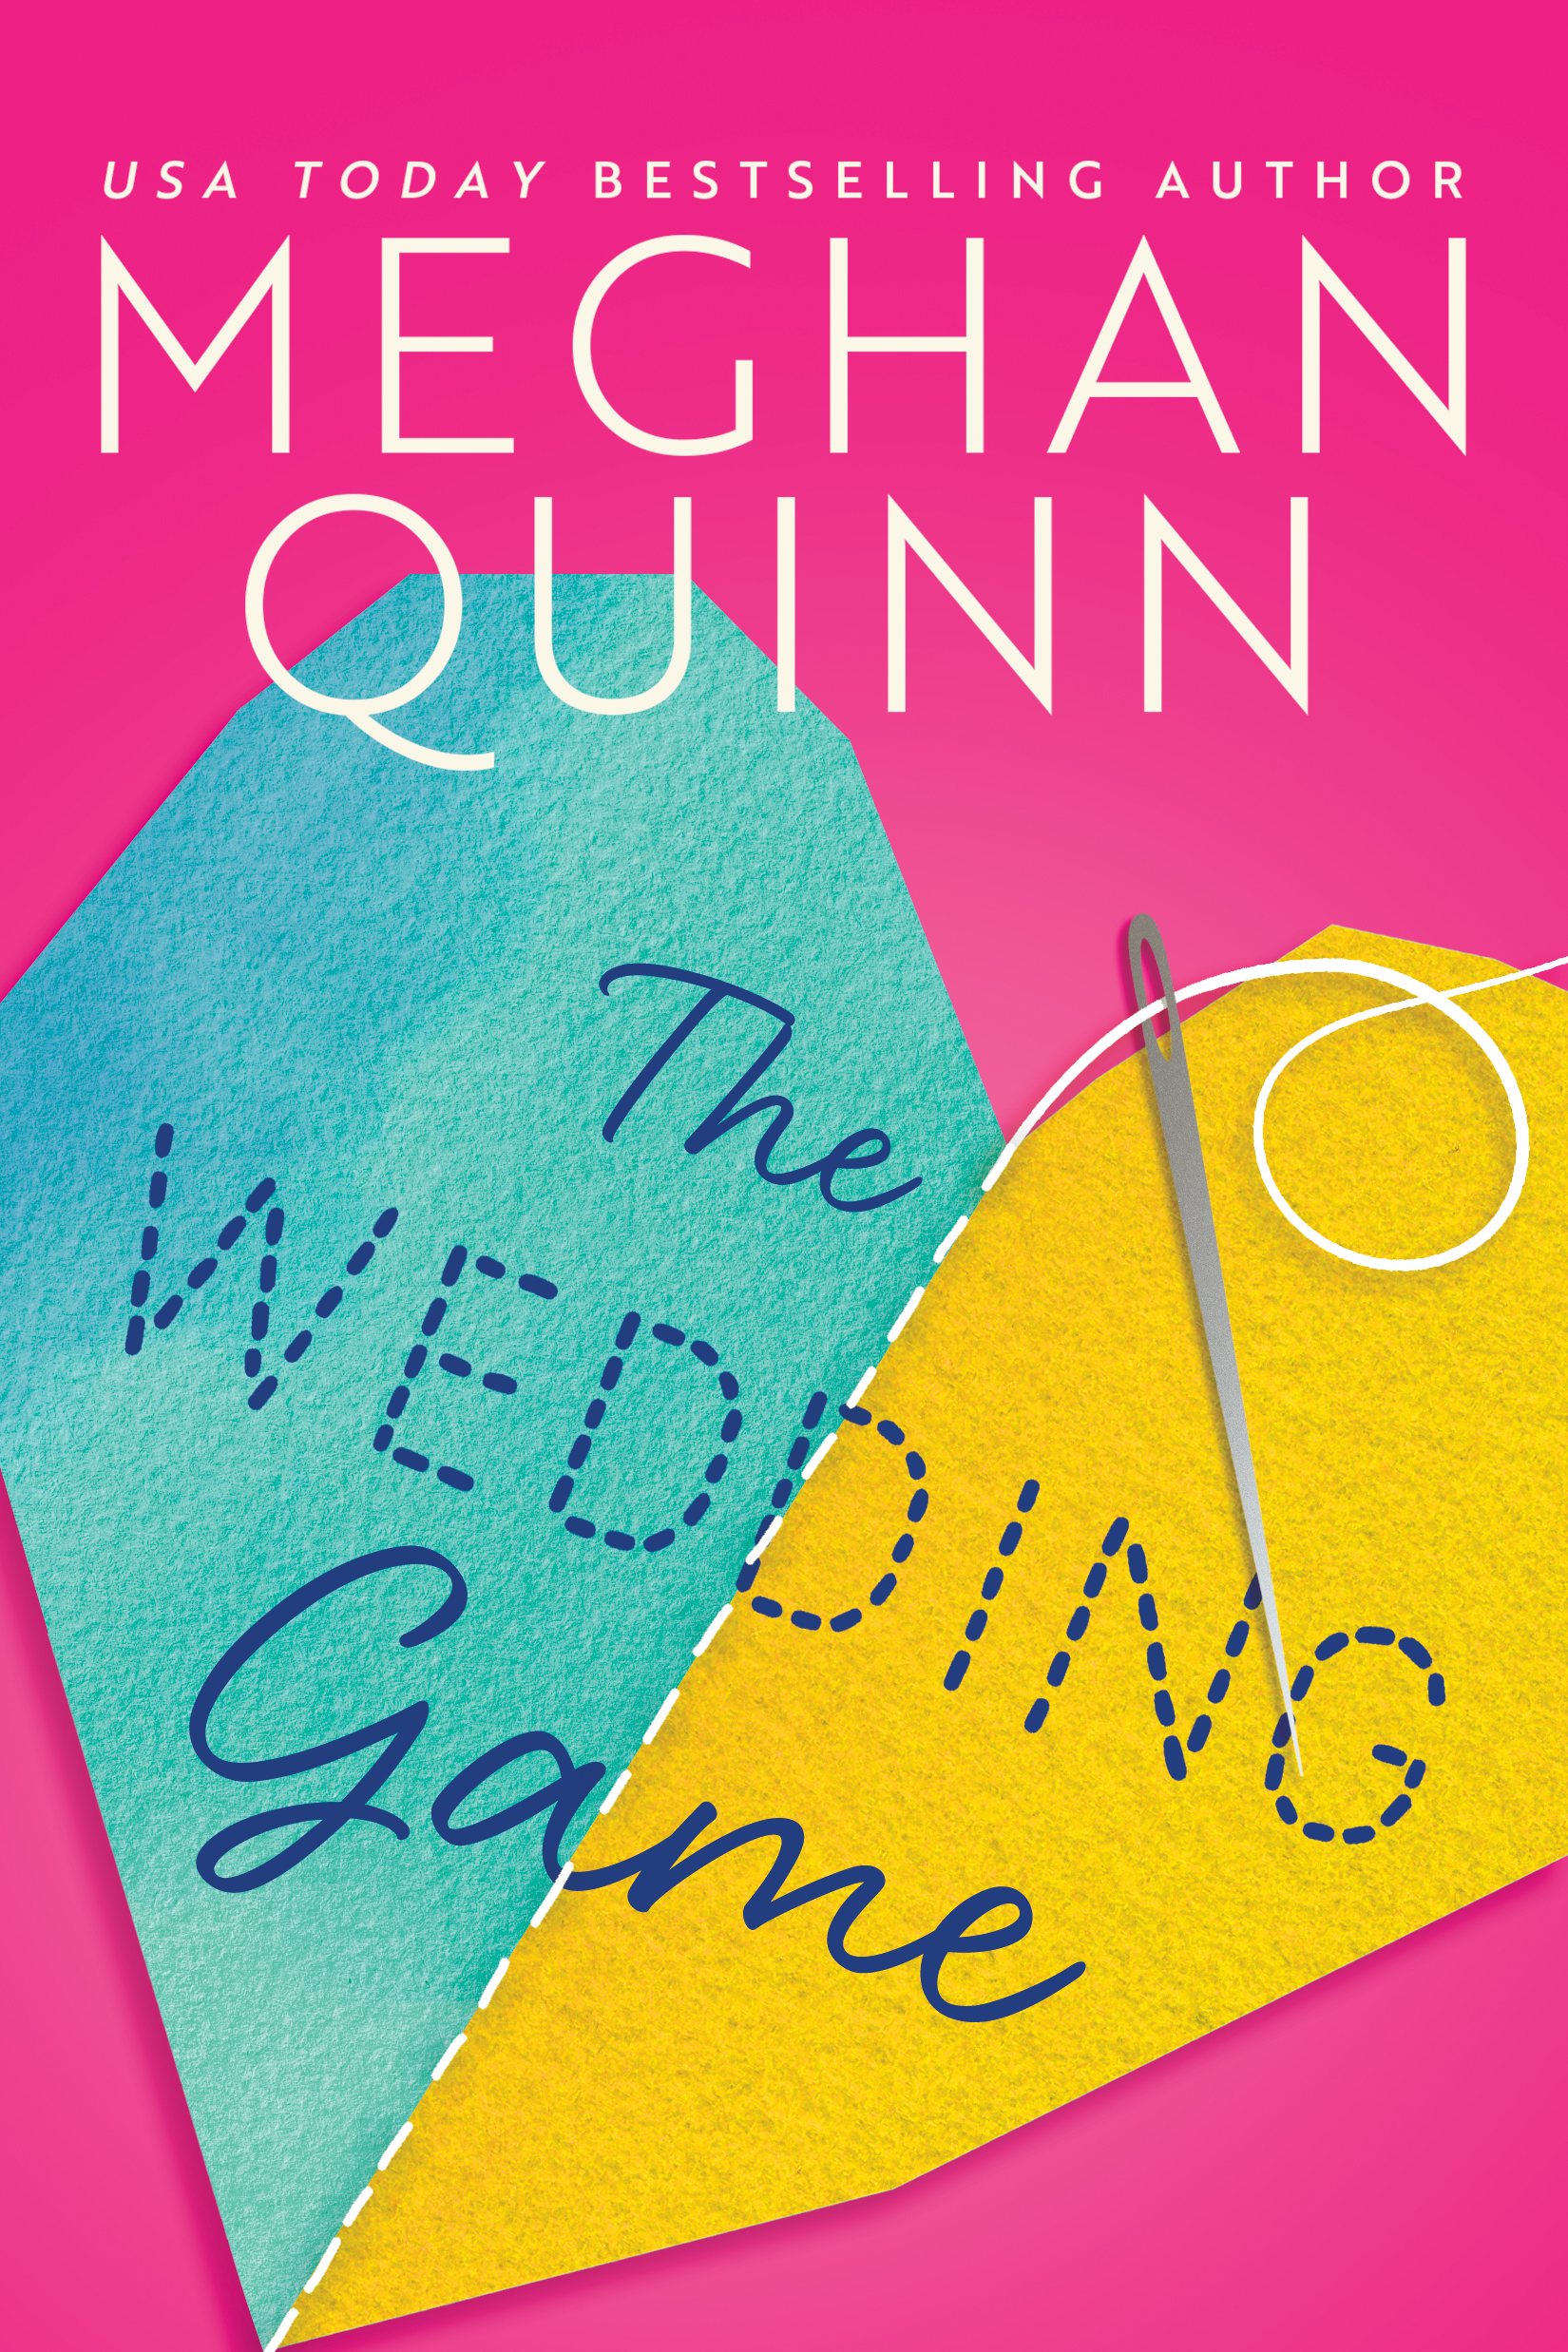 THE WEDDING GAME Cover – Meghan Quinn